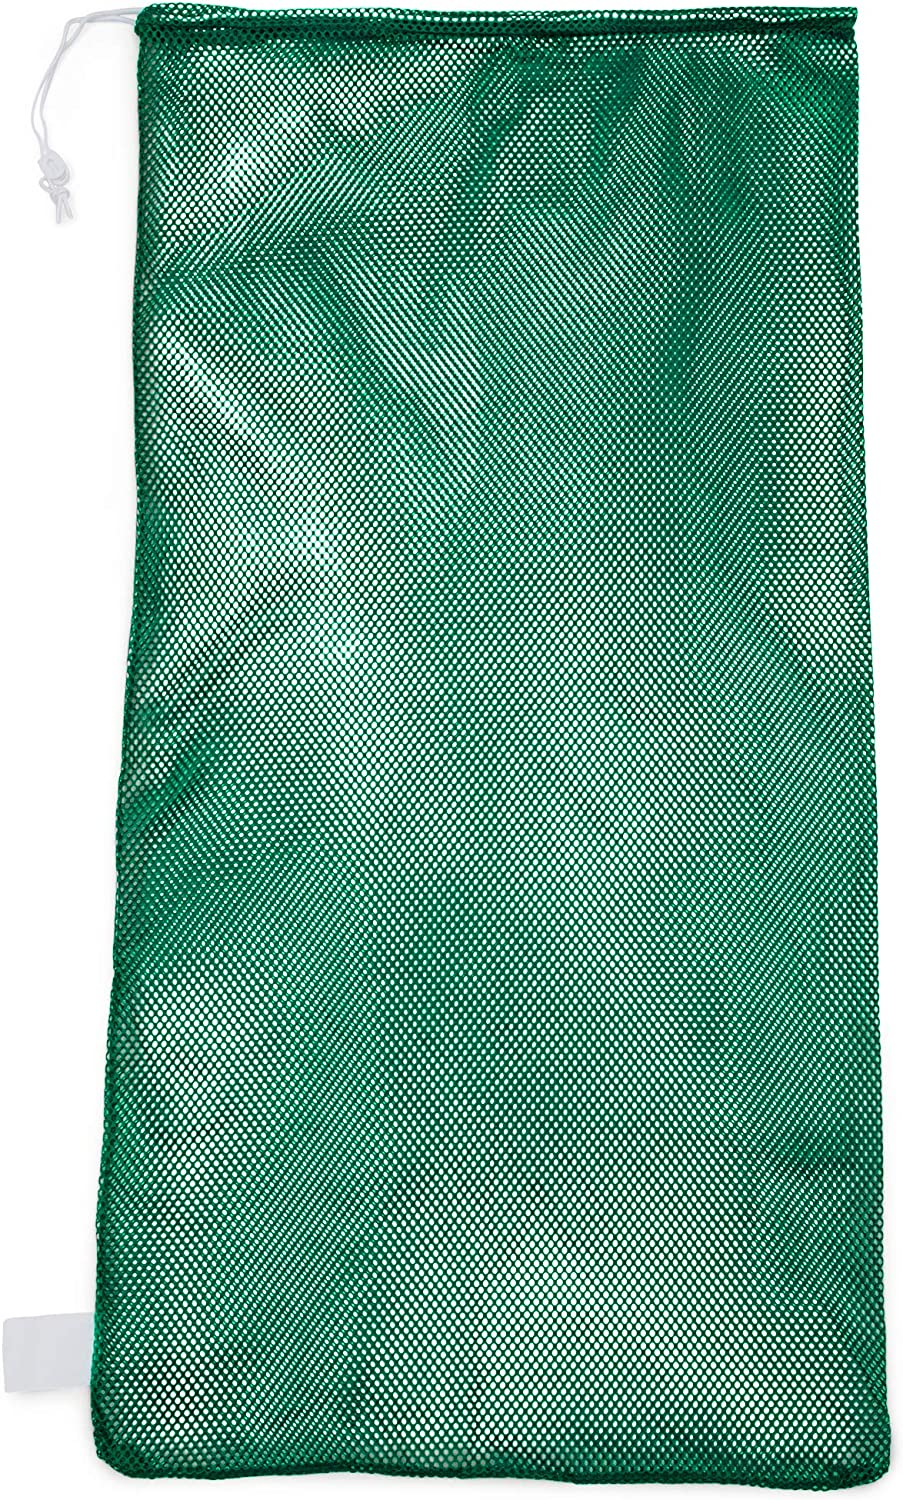 Champion Sports Mesh Equipment Bag 24x48 Selling rankings Green - Inches Fort Worth Mall